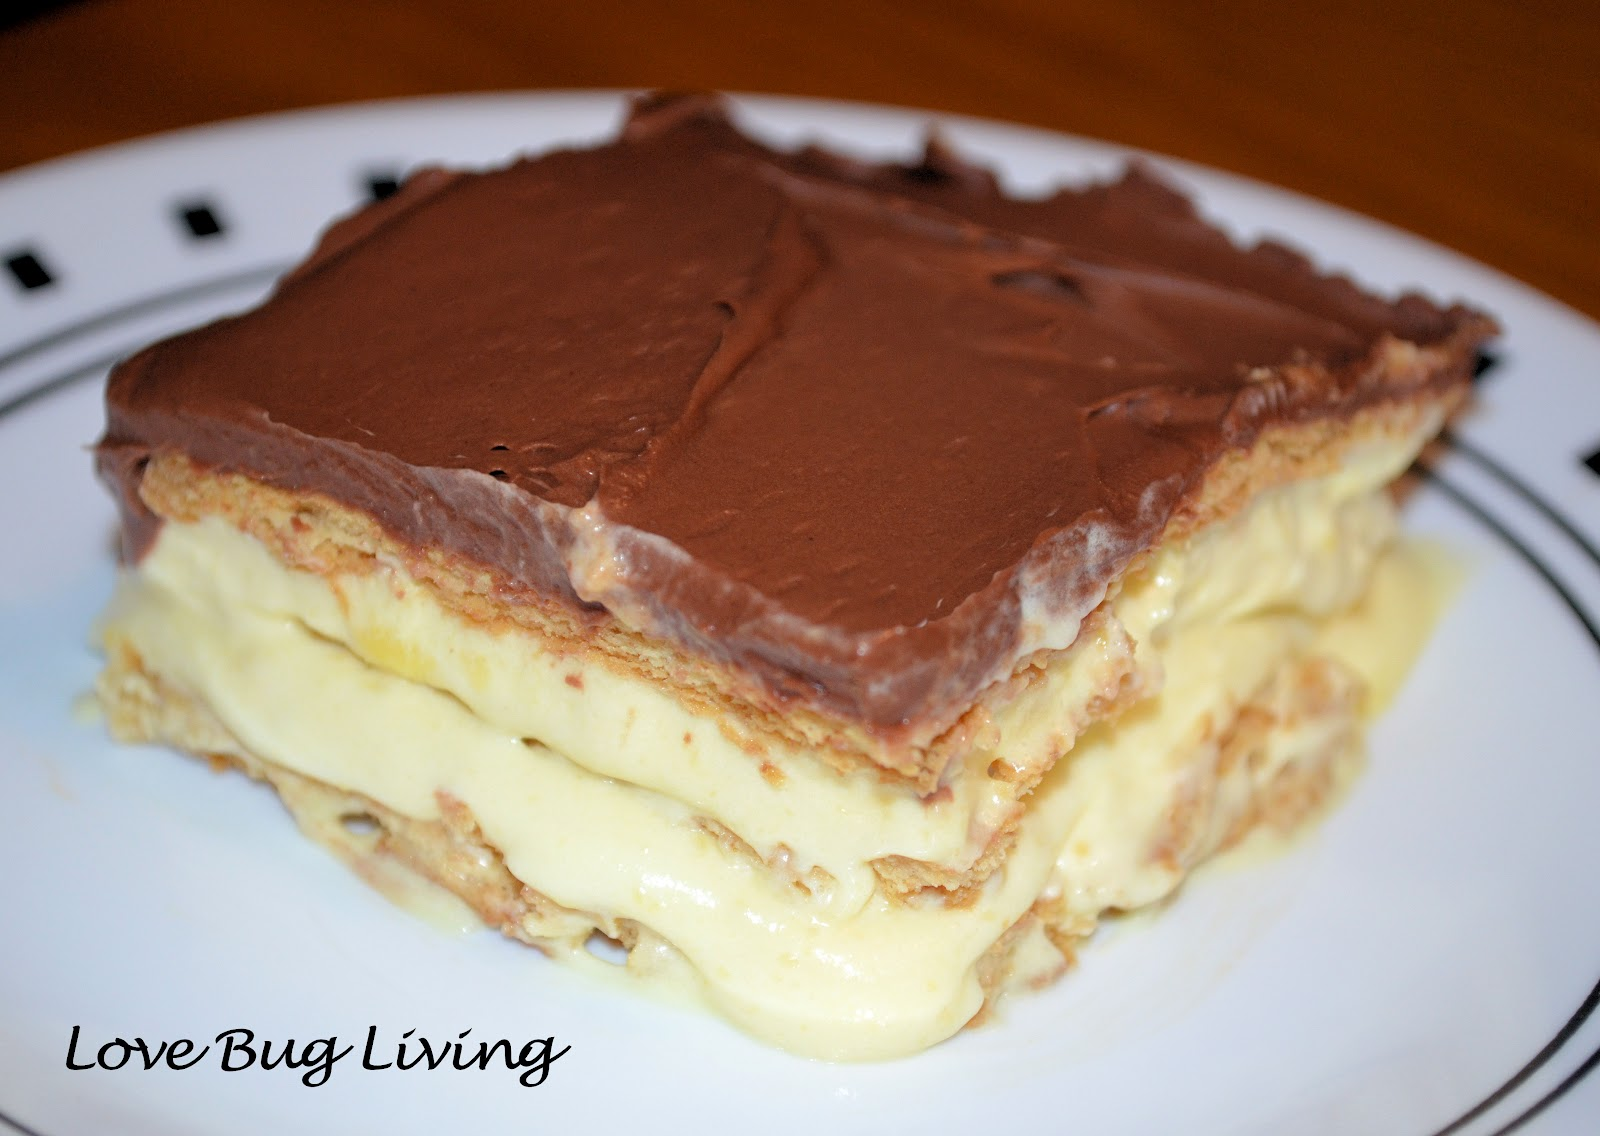 Cake Recipes In Pinterest: Love Bug Living: Pinterest Father's Day